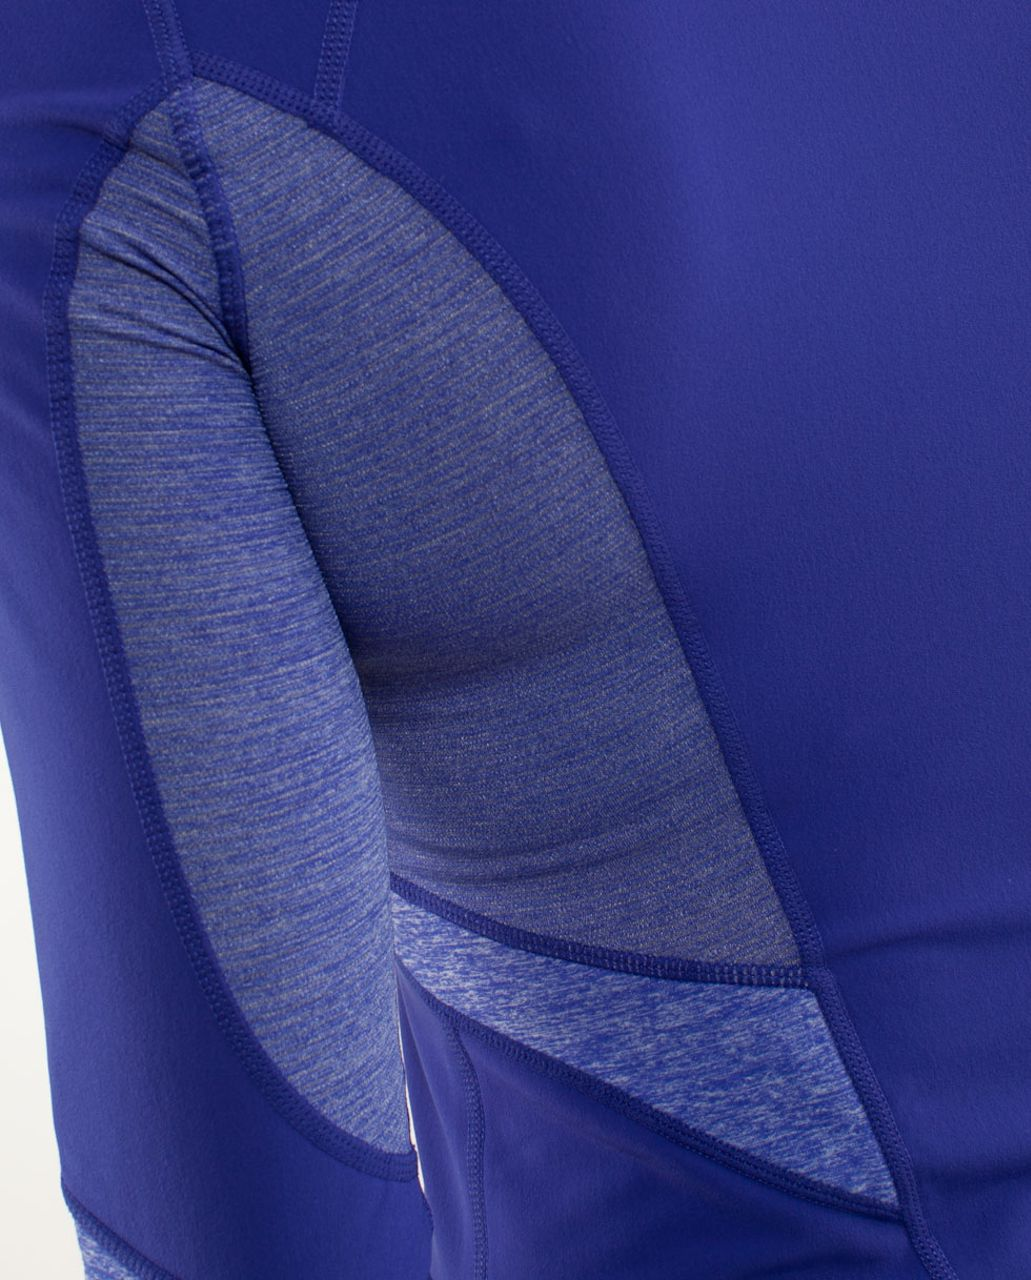 Lululemon Run:  Distance Pullover - Pigment Blue /  Heathered Pigment Blue